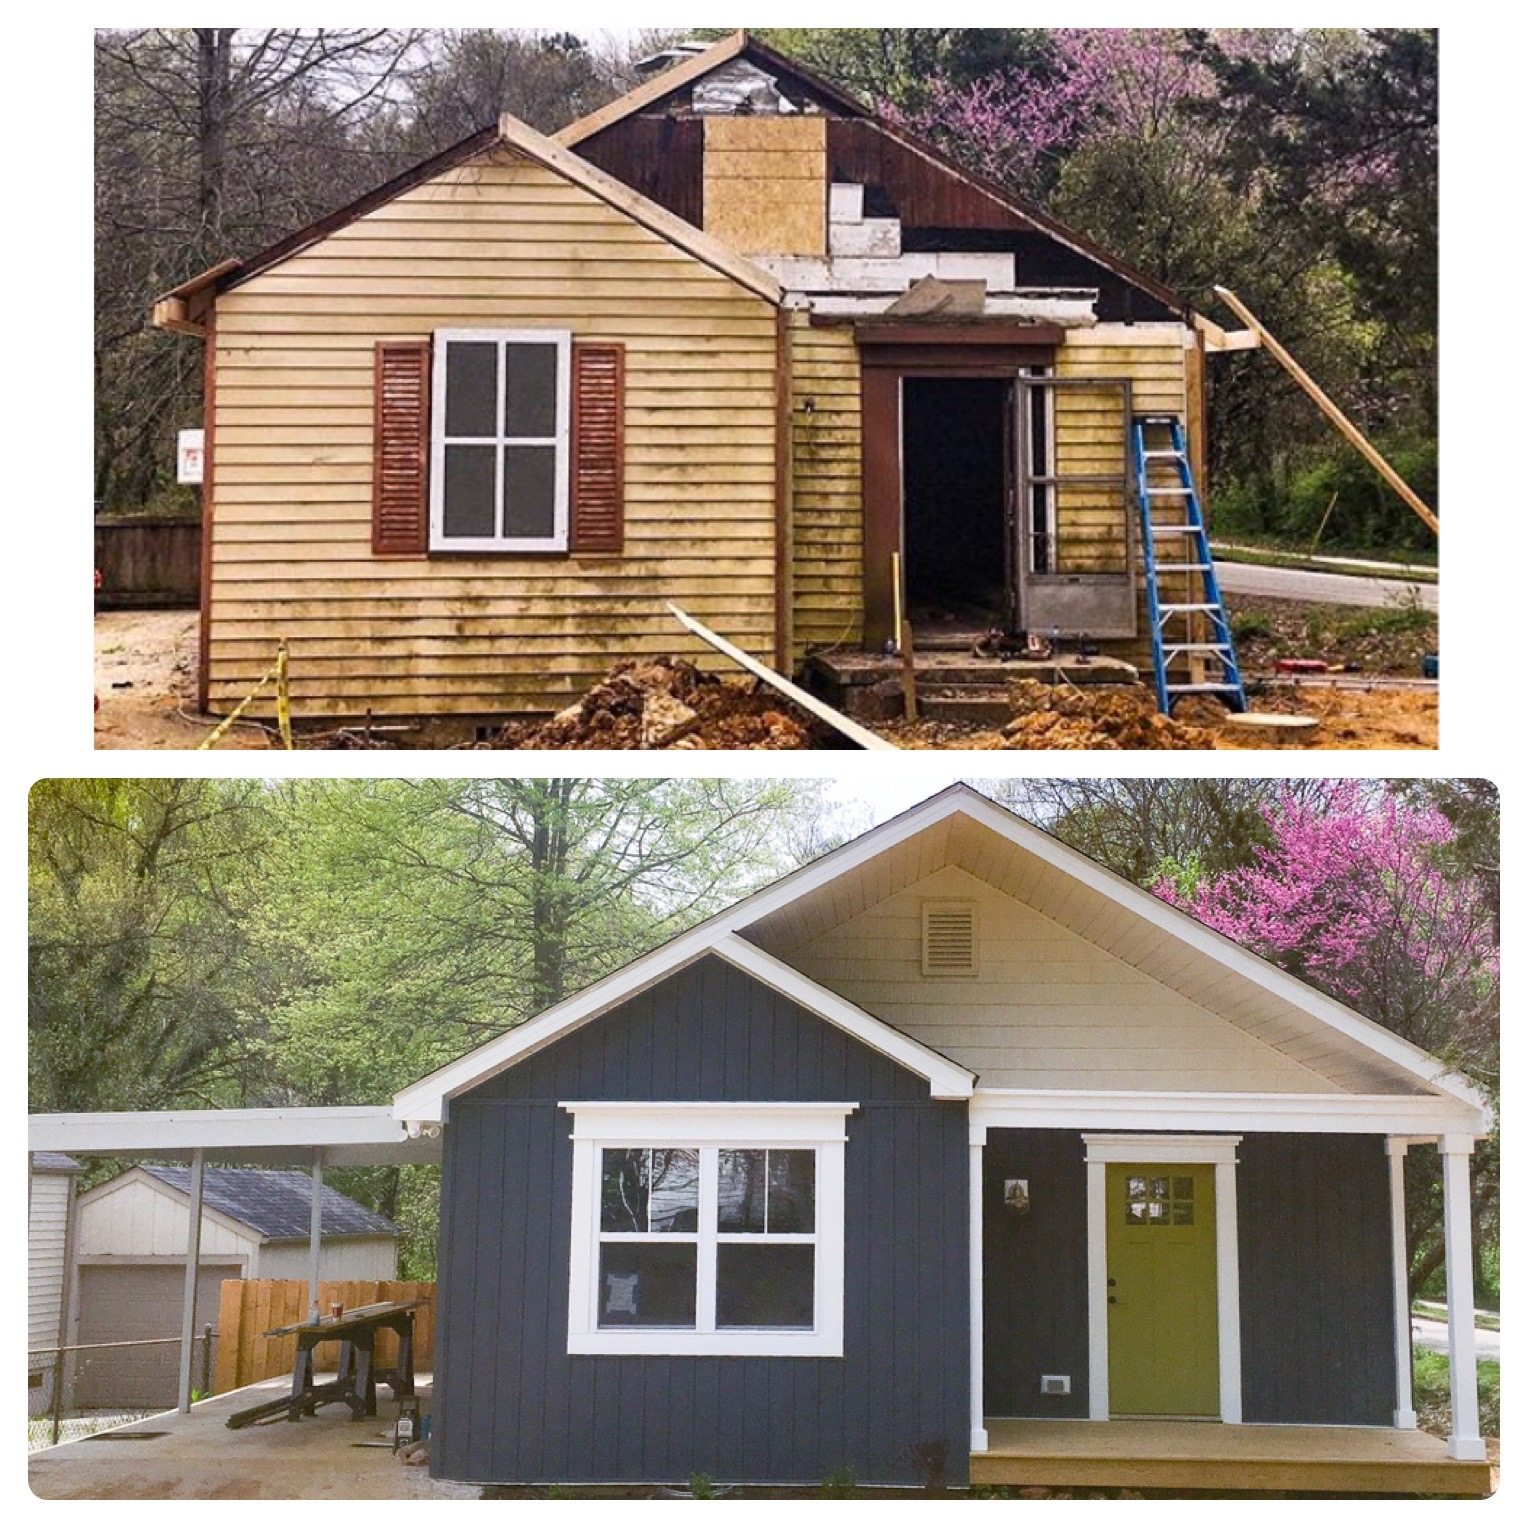 Cottage Renovation: Before and After